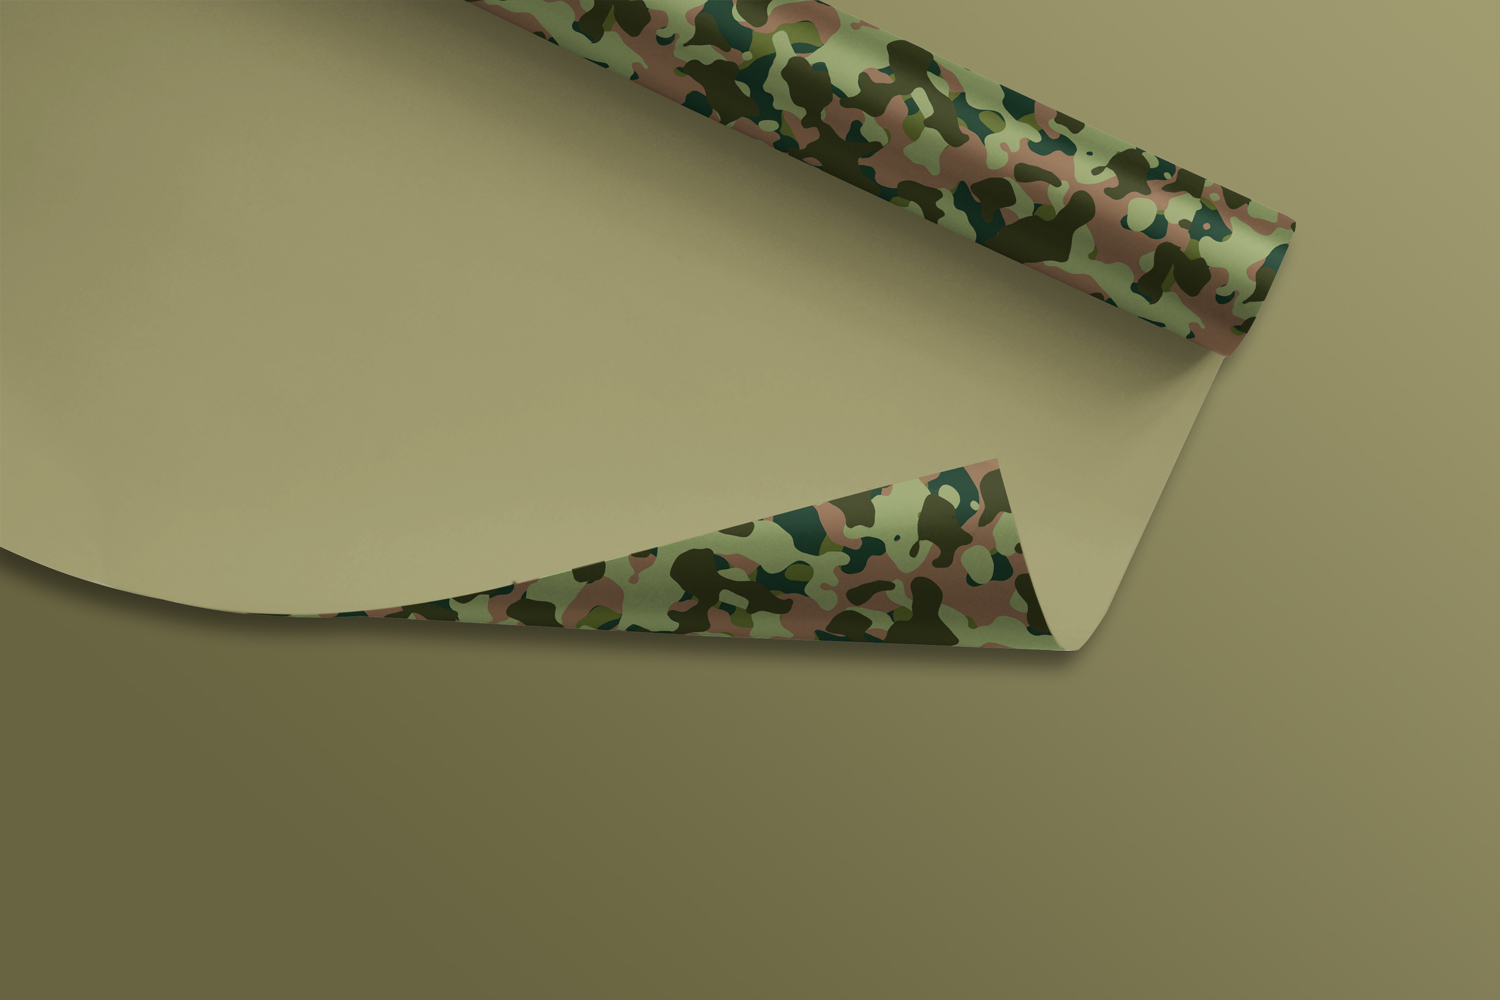 40 Alternative Camouflage Paper Designs example image 26